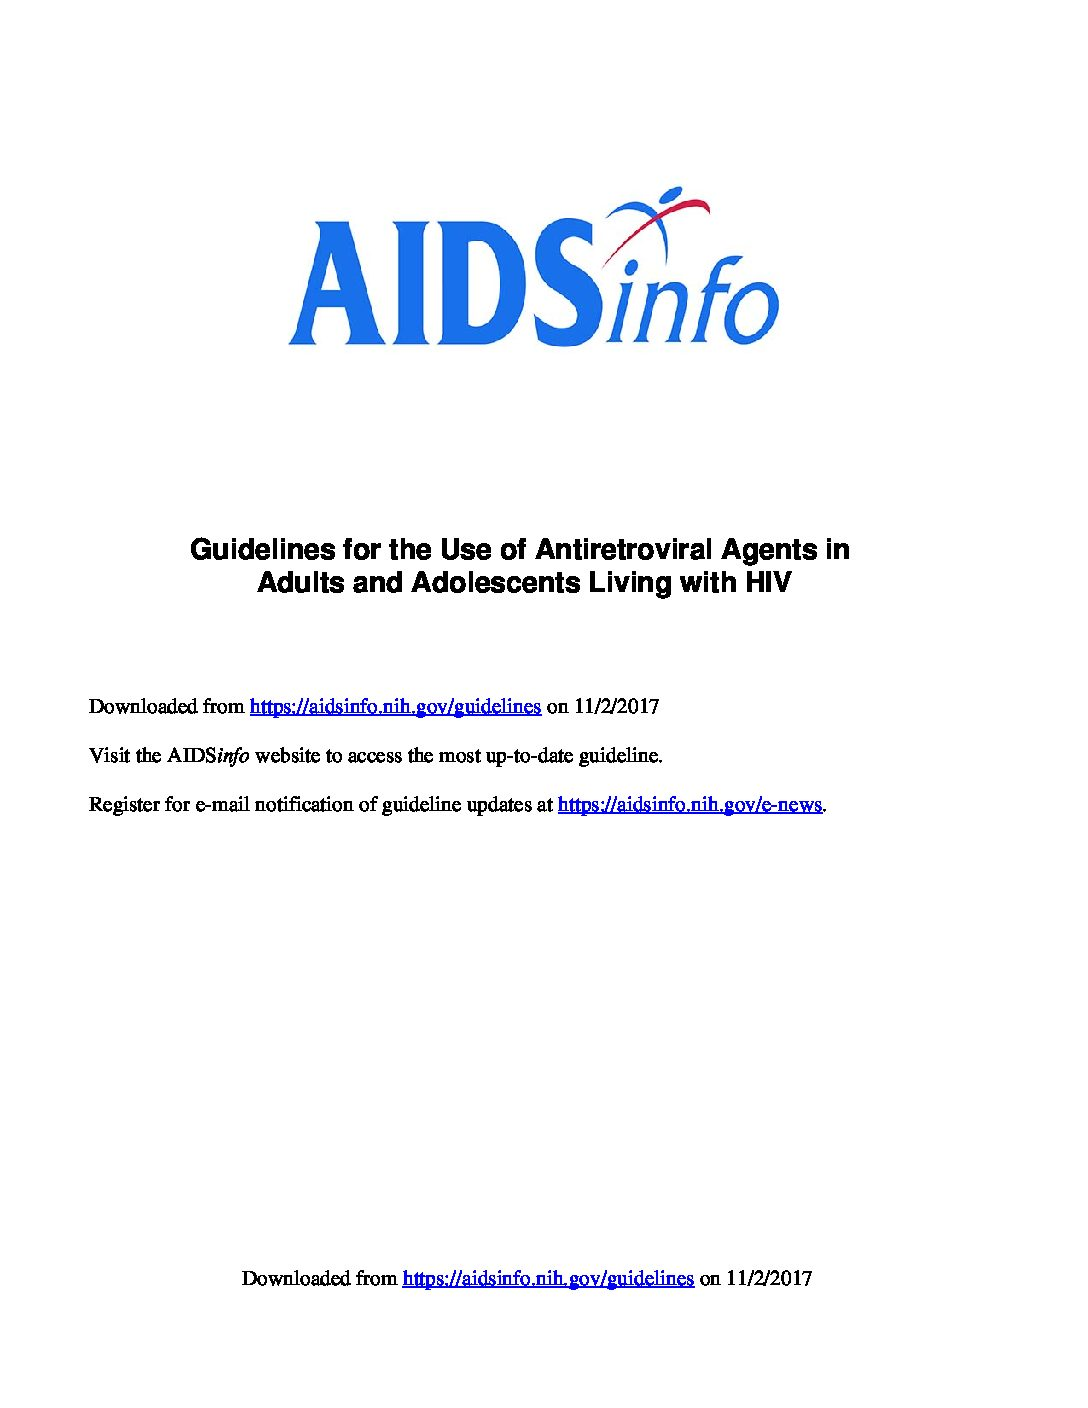 Guidelines for the Use of Antiretroviral Agents in Adults and Adolescents Living with HIV